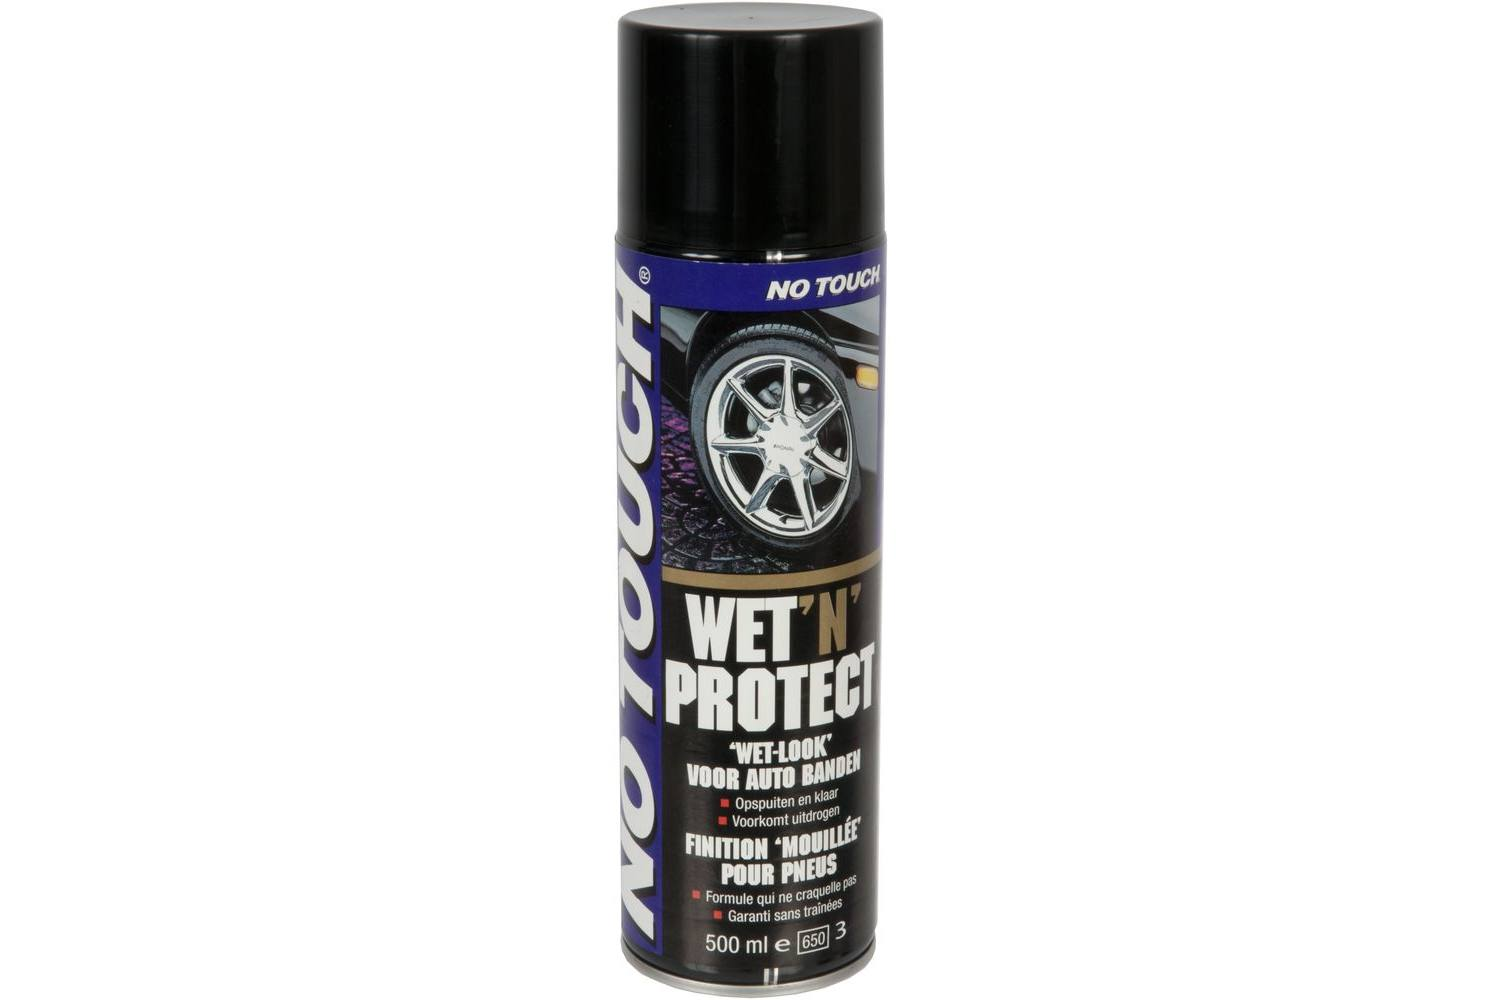 Car cleaner, No Touch, 500ml, wet´n´protect 1